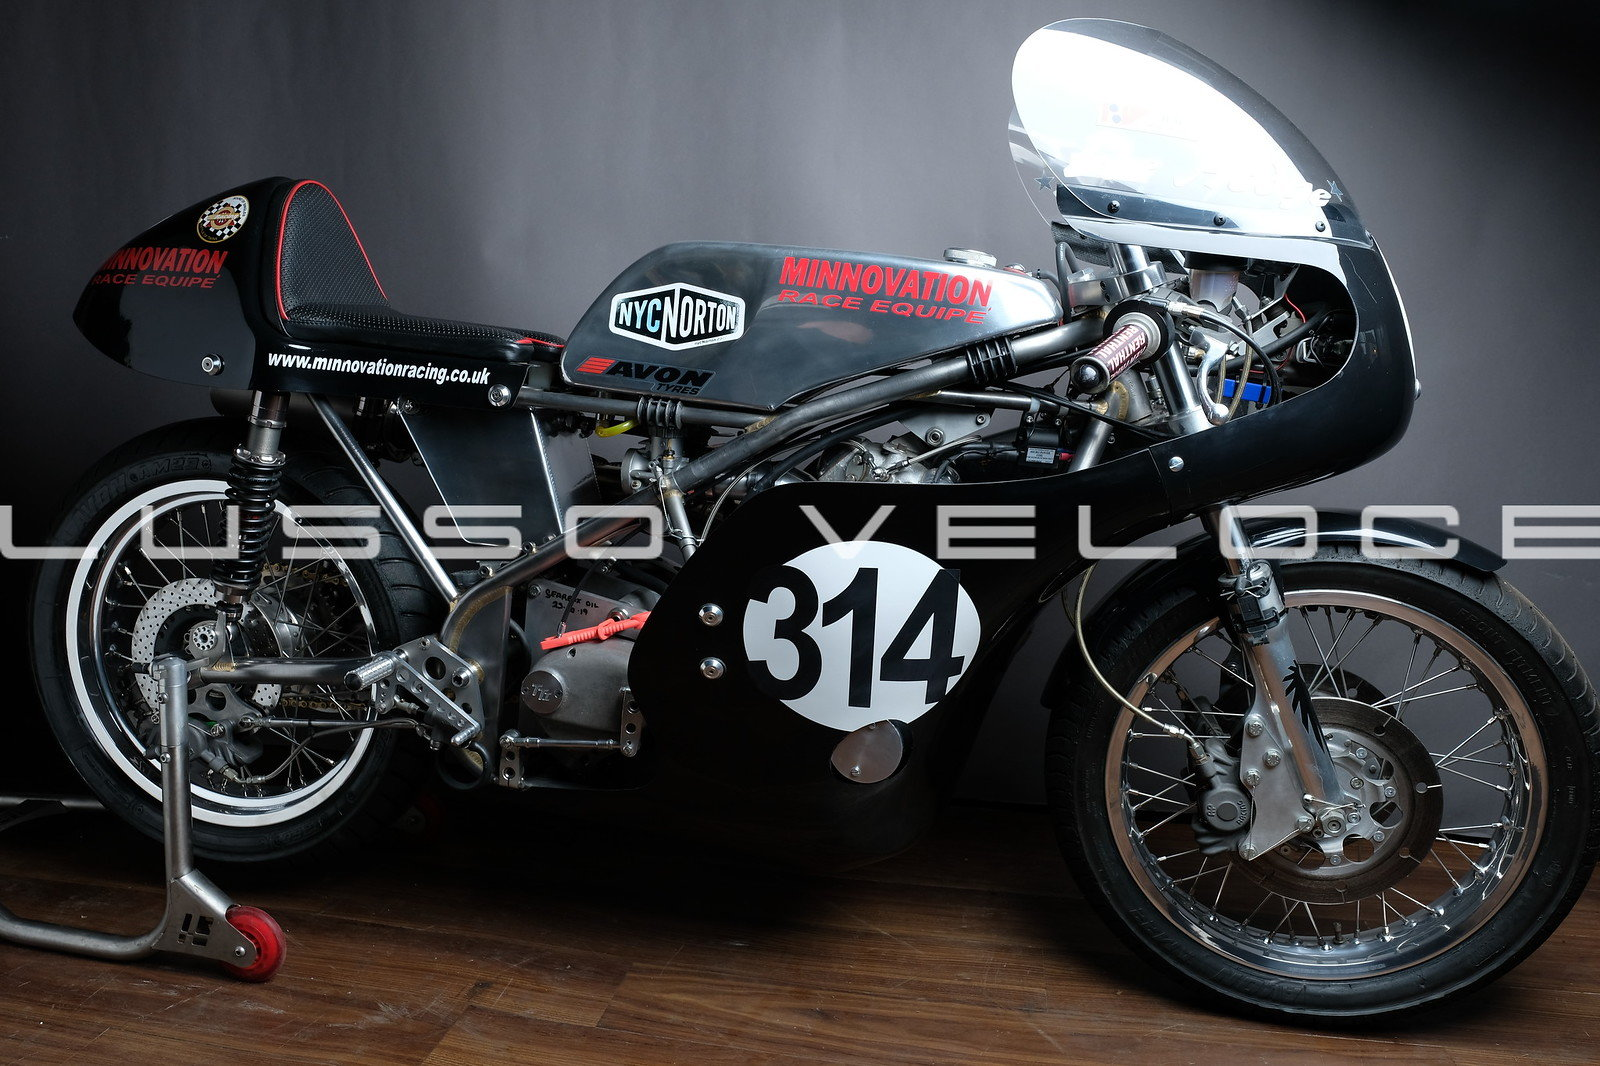 1972 Norton Seeley Commando 750 race bike For Sale (picture 1 of 20)